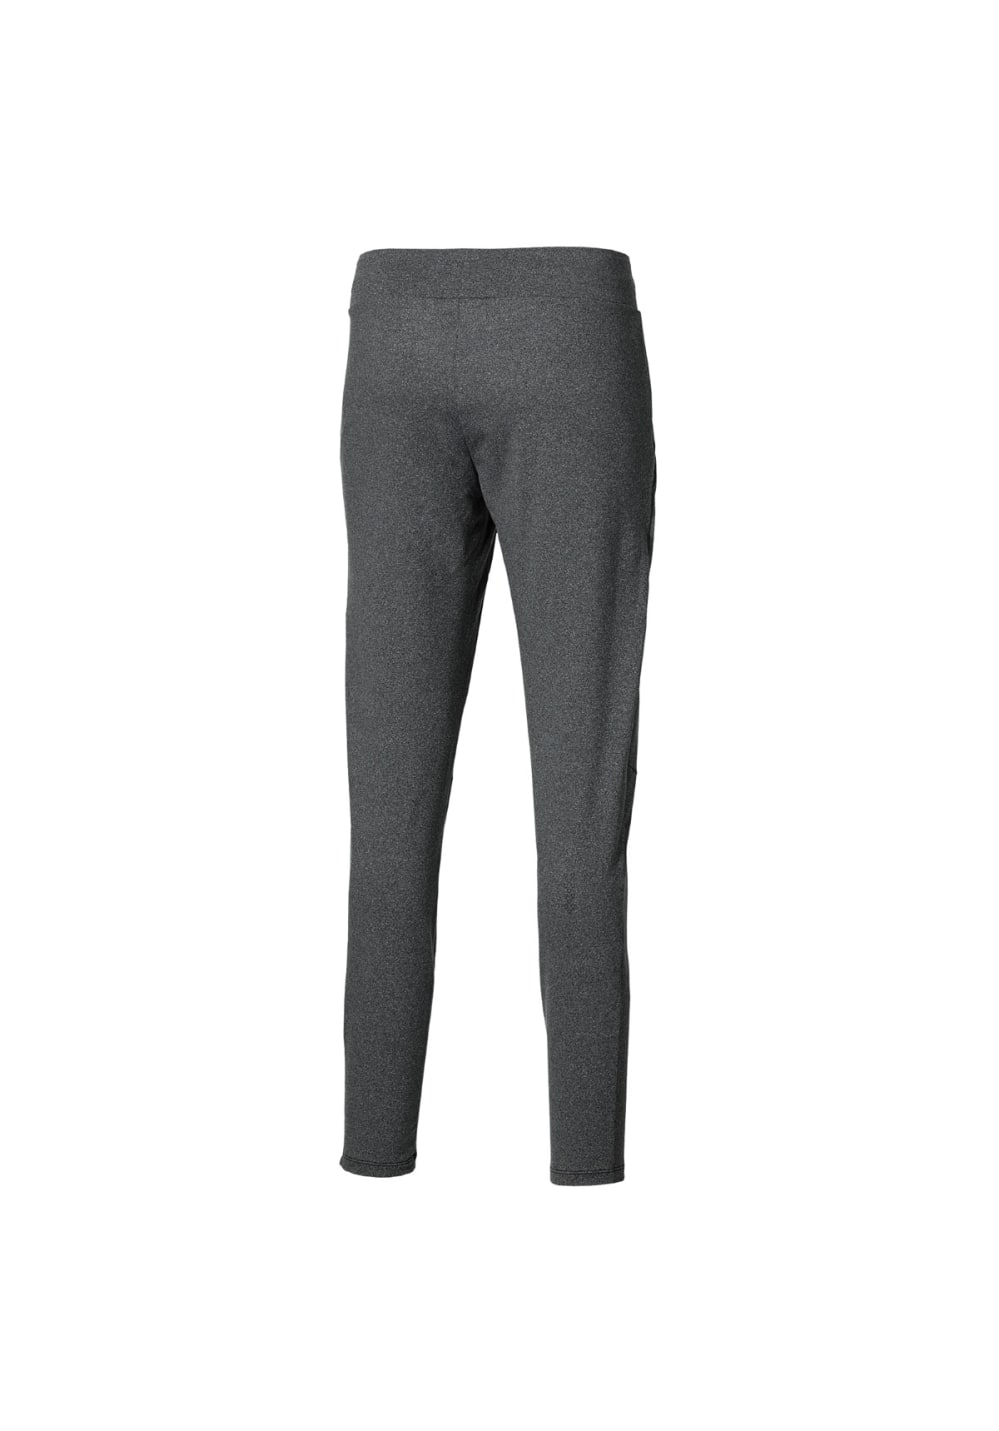 738d048ef845 Next. New. This product is currently out of stock. ASICS. Thermopolis Pant  - Running trousers ...